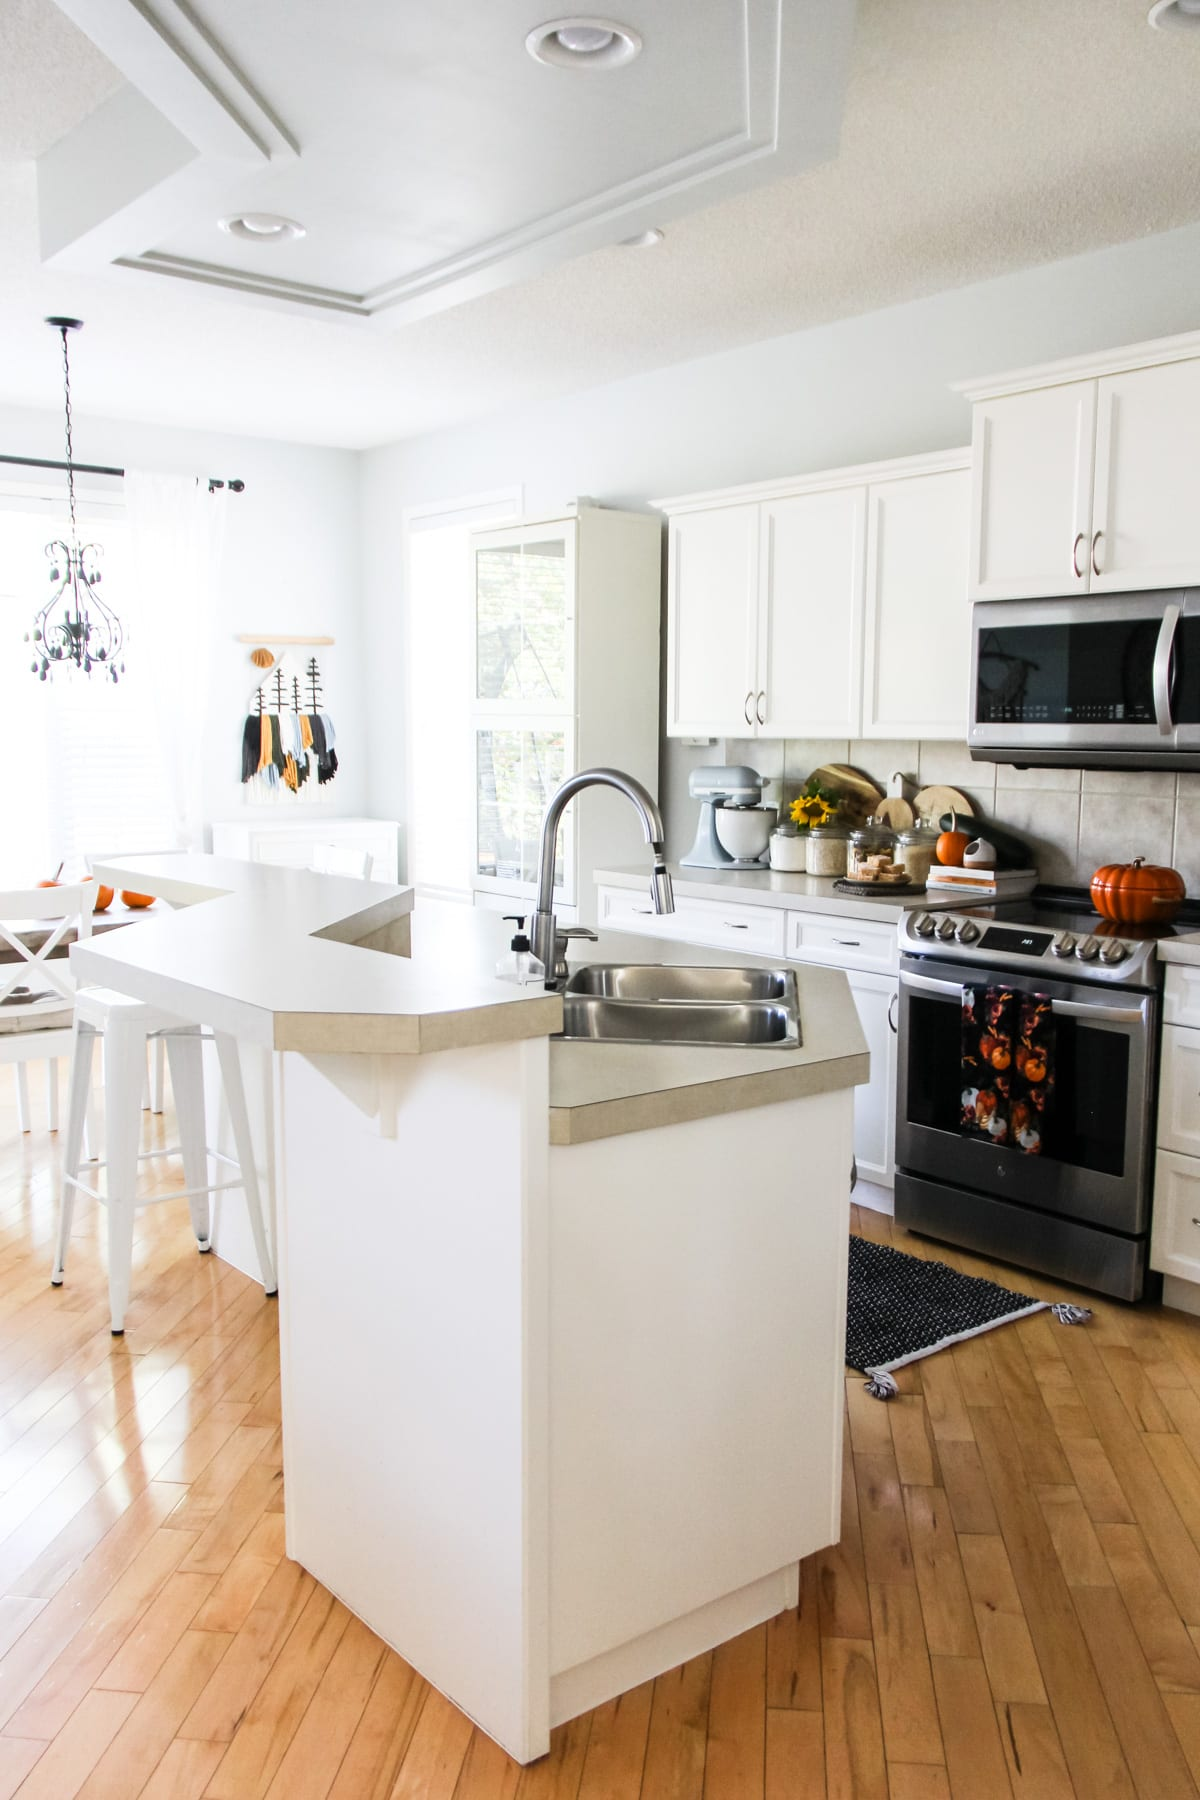 Fall Home Tour: a white kitchen and island. there is a black and steel stove. the cream coloured kitchen counters have jars of ingredients, a mixer, flowers and pumpkins